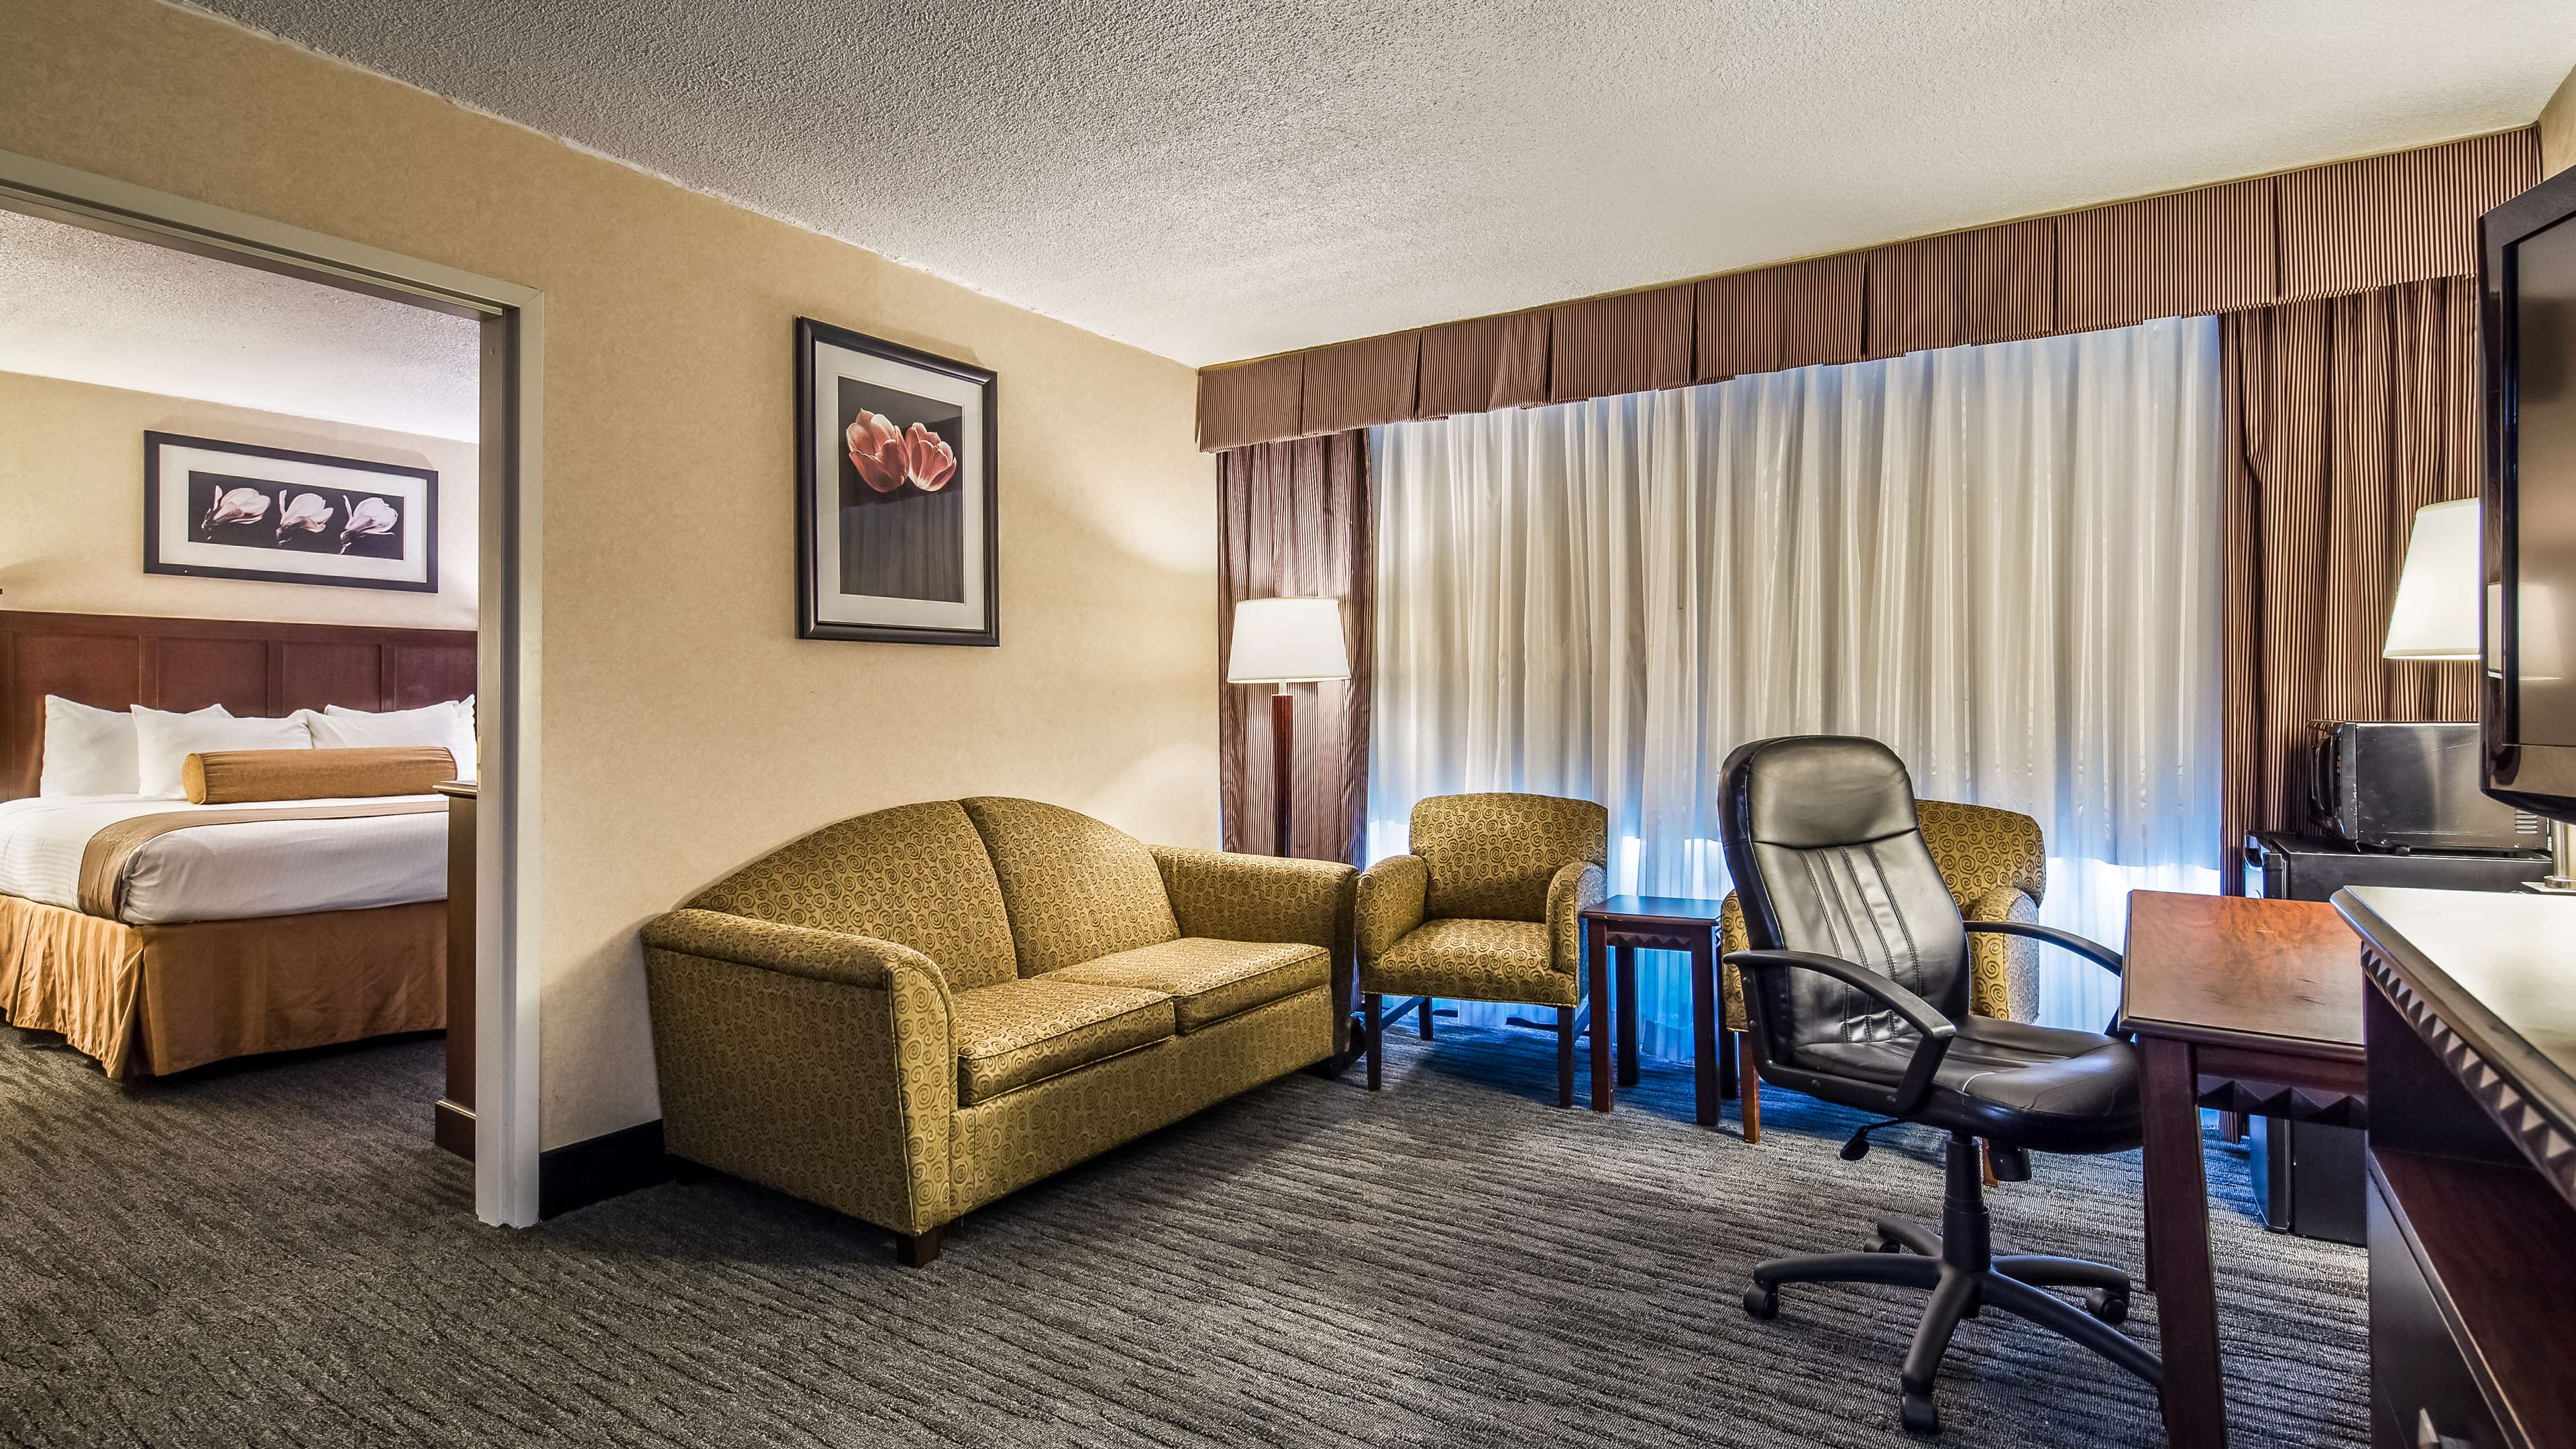 Best Western Plus Rockville Hotel & Suites image 14